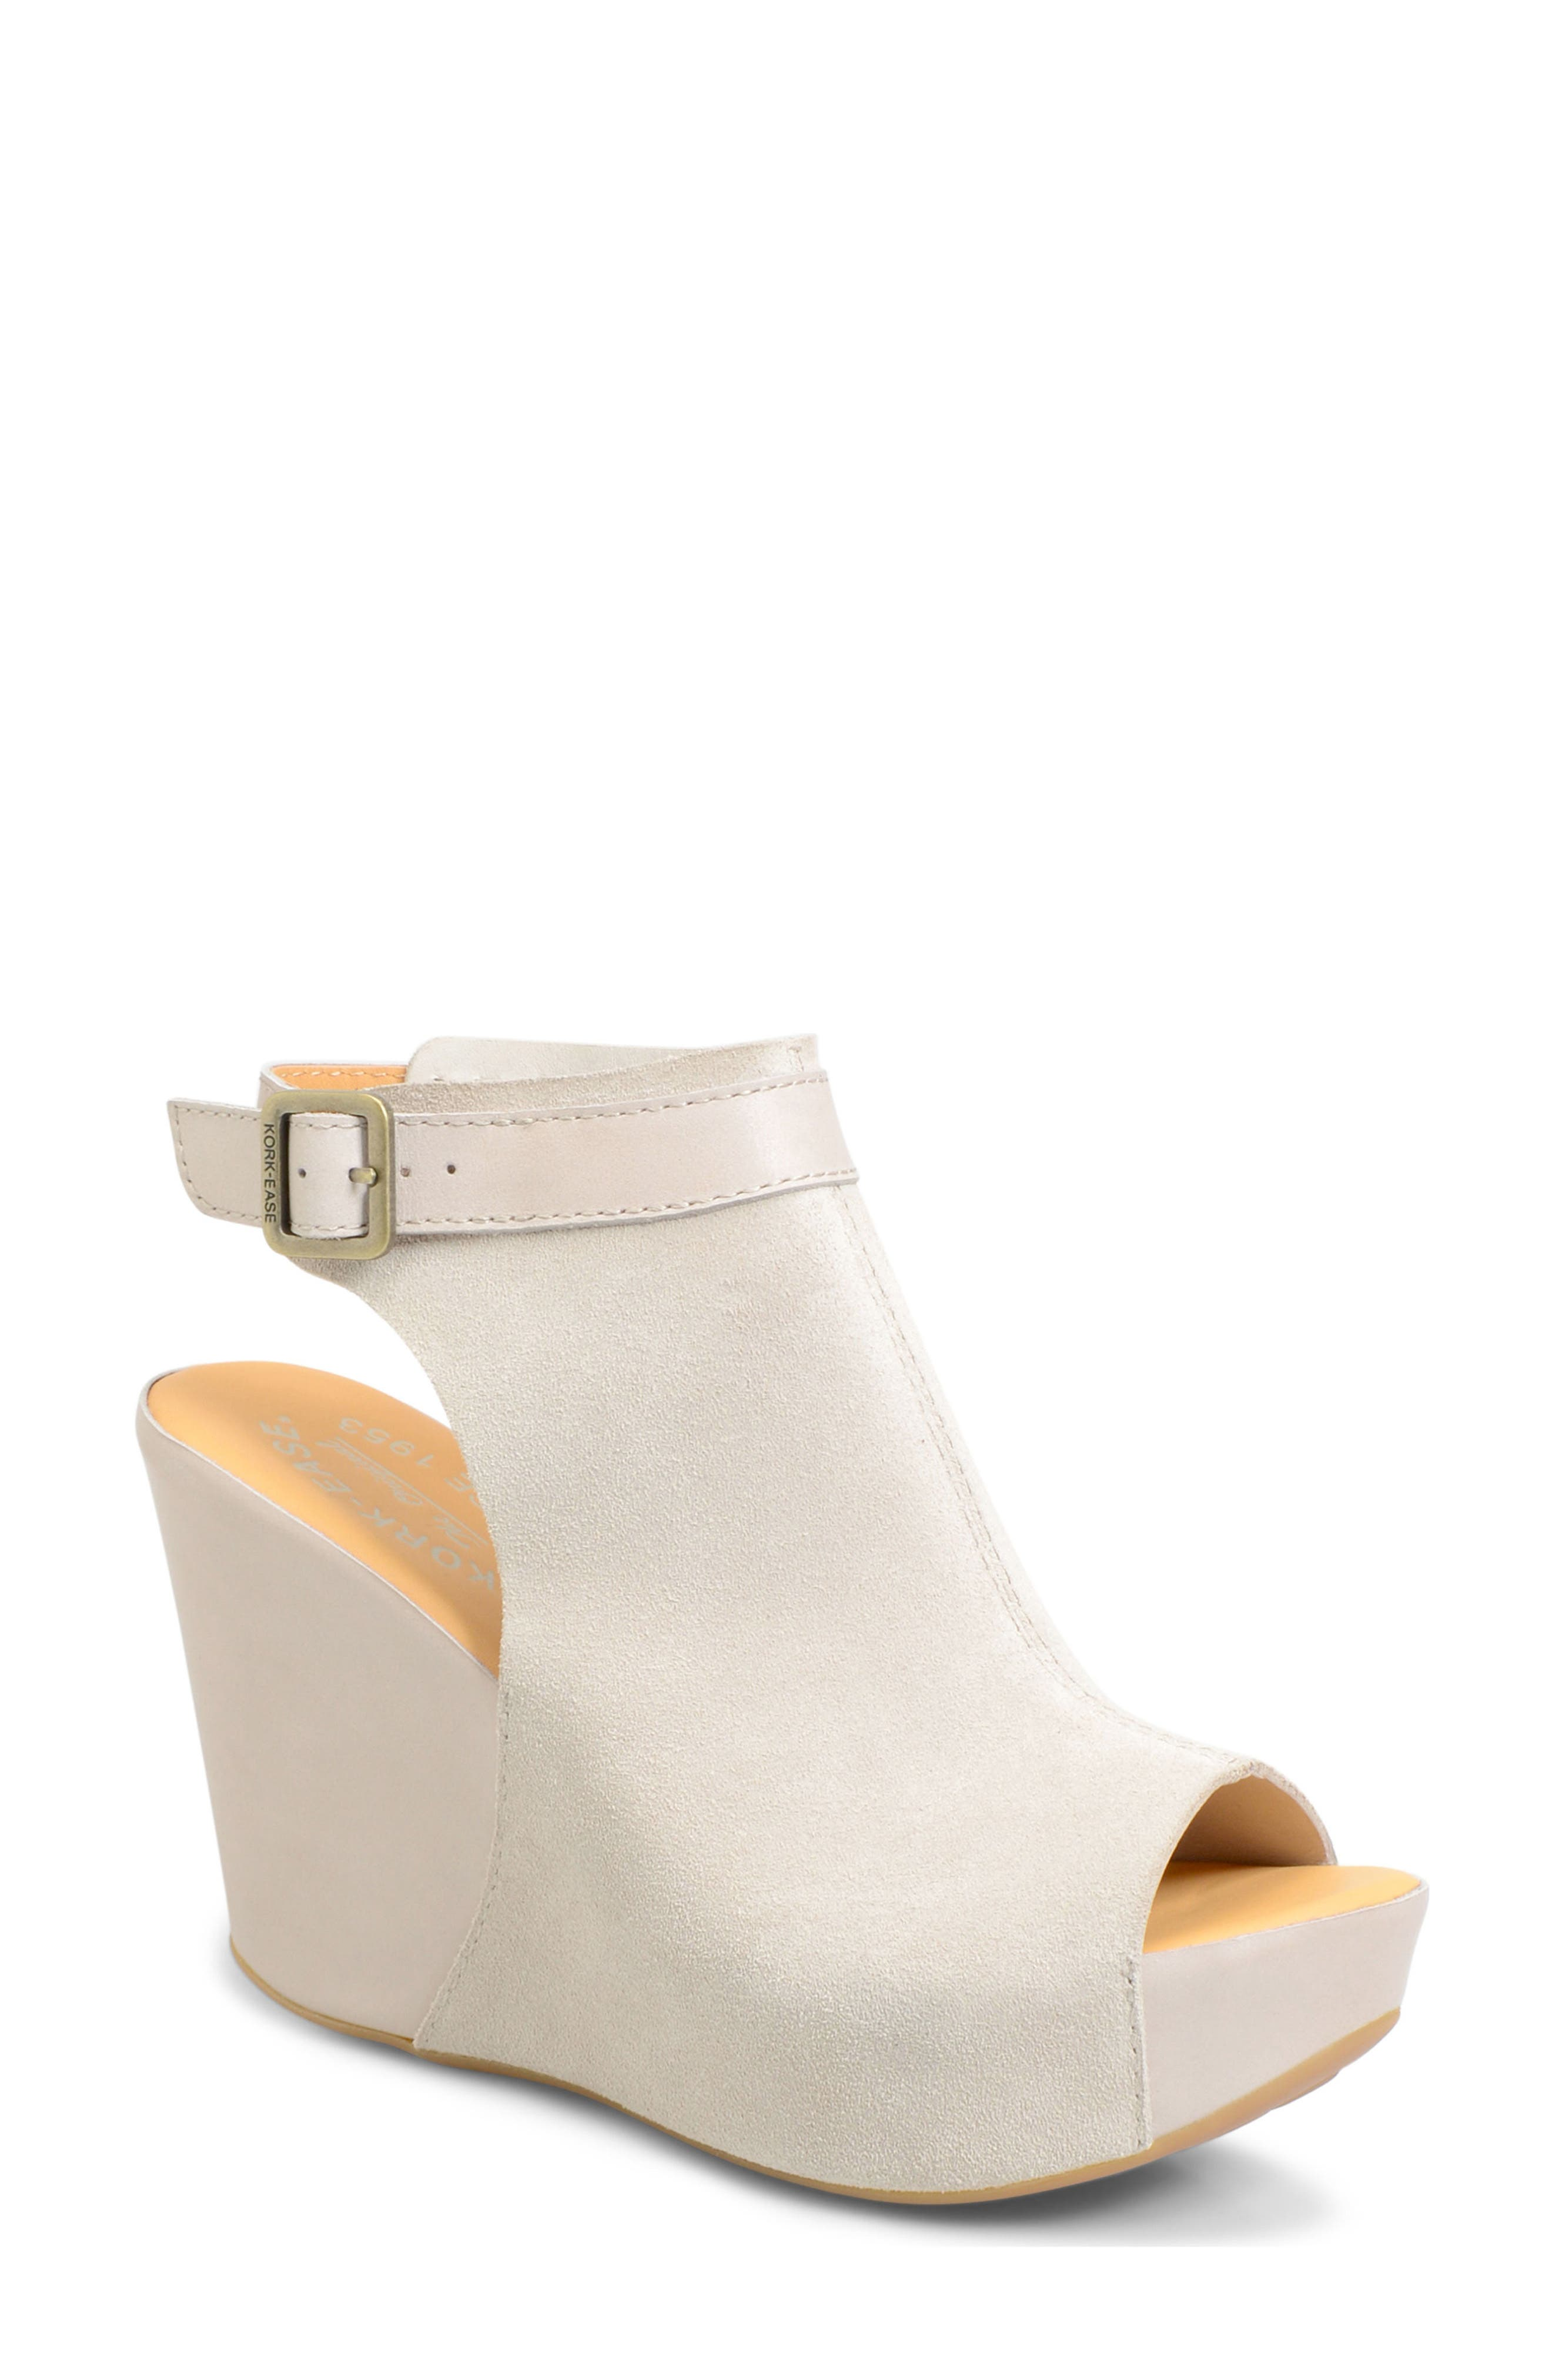 Main Image - Kork-Ease® 'Berit' Wedge Sandal (Women)